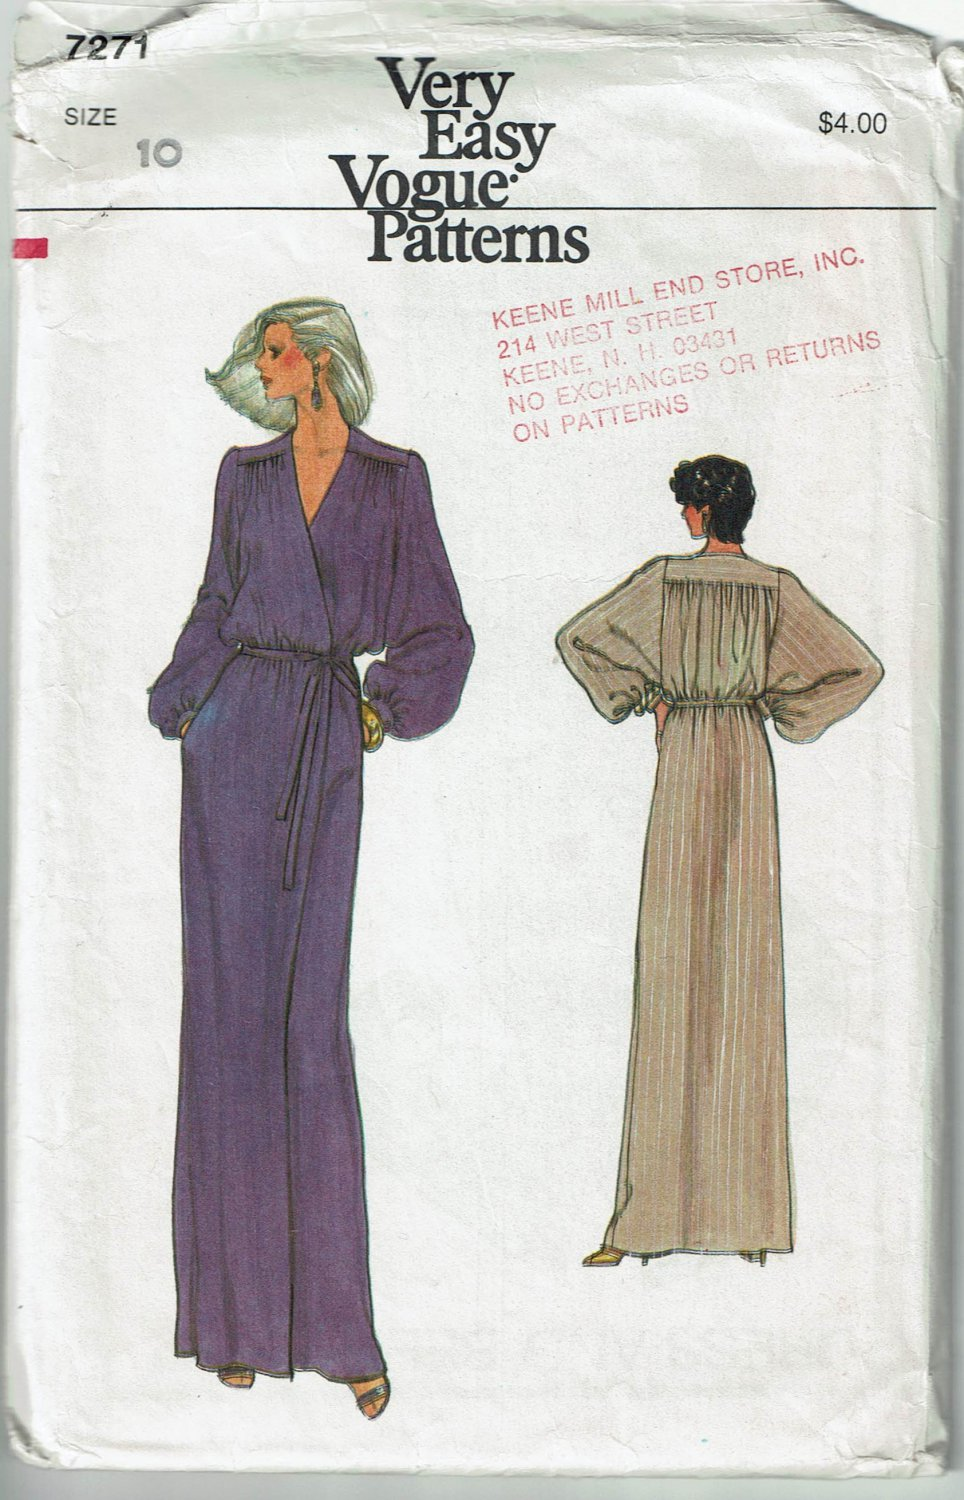 1970s Very Easy Vogue Pattern 7271 wrap dress or gown pattern size 10. Cut.